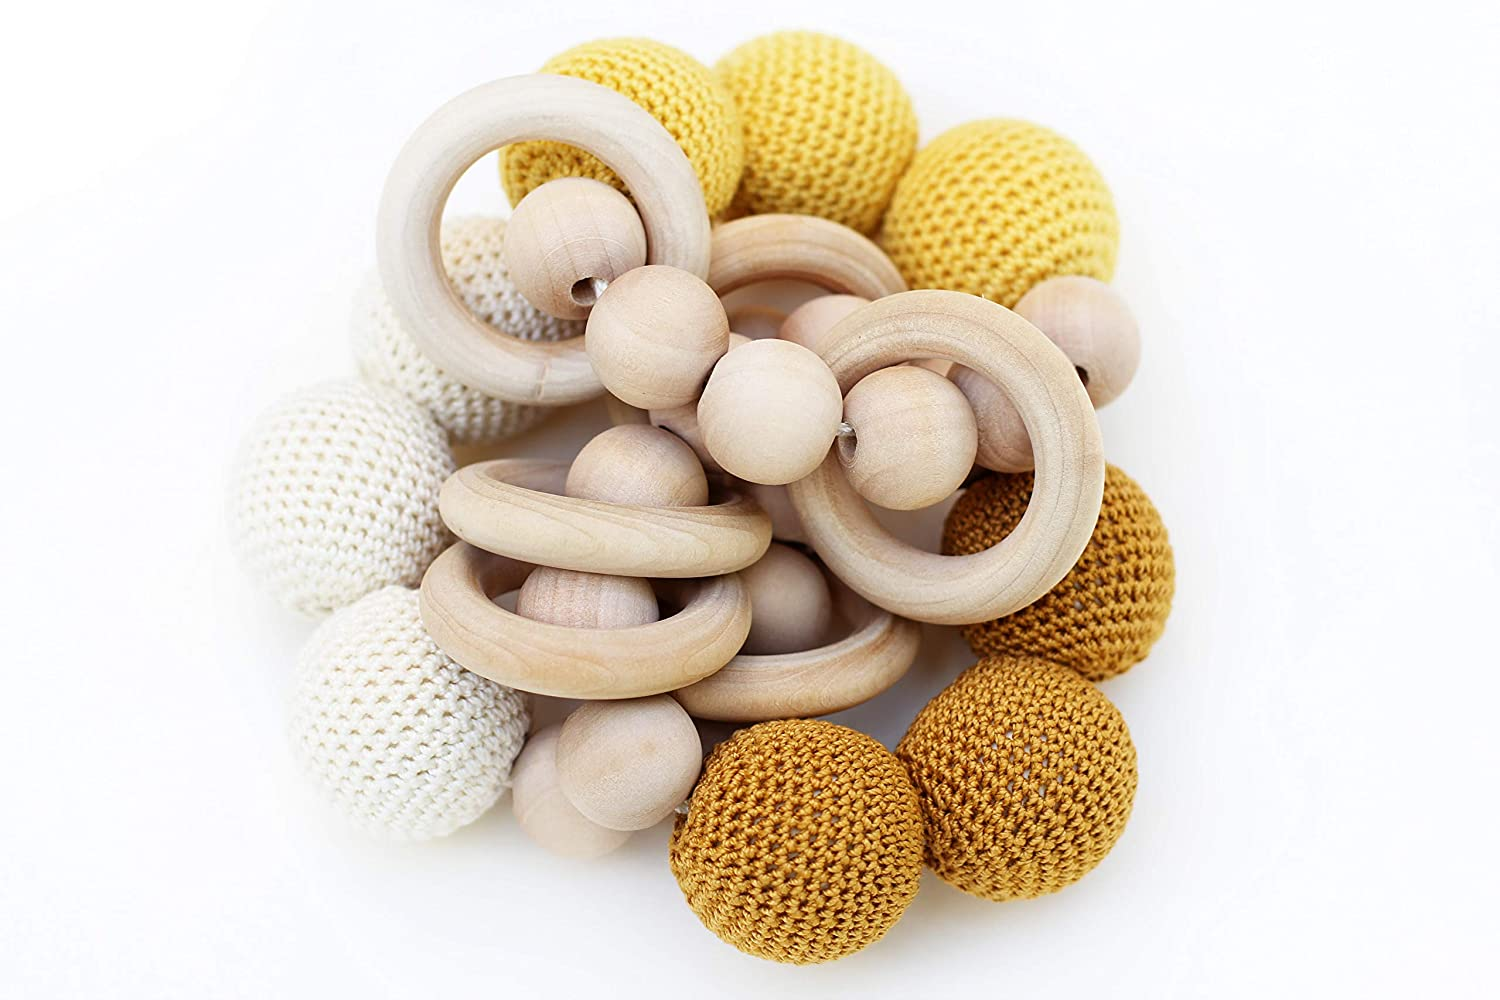 Baby teething toy rattle Infant toys Rattle toy Teething toy rattle For baby Toys for newborns Gender neutral Baby shower gift